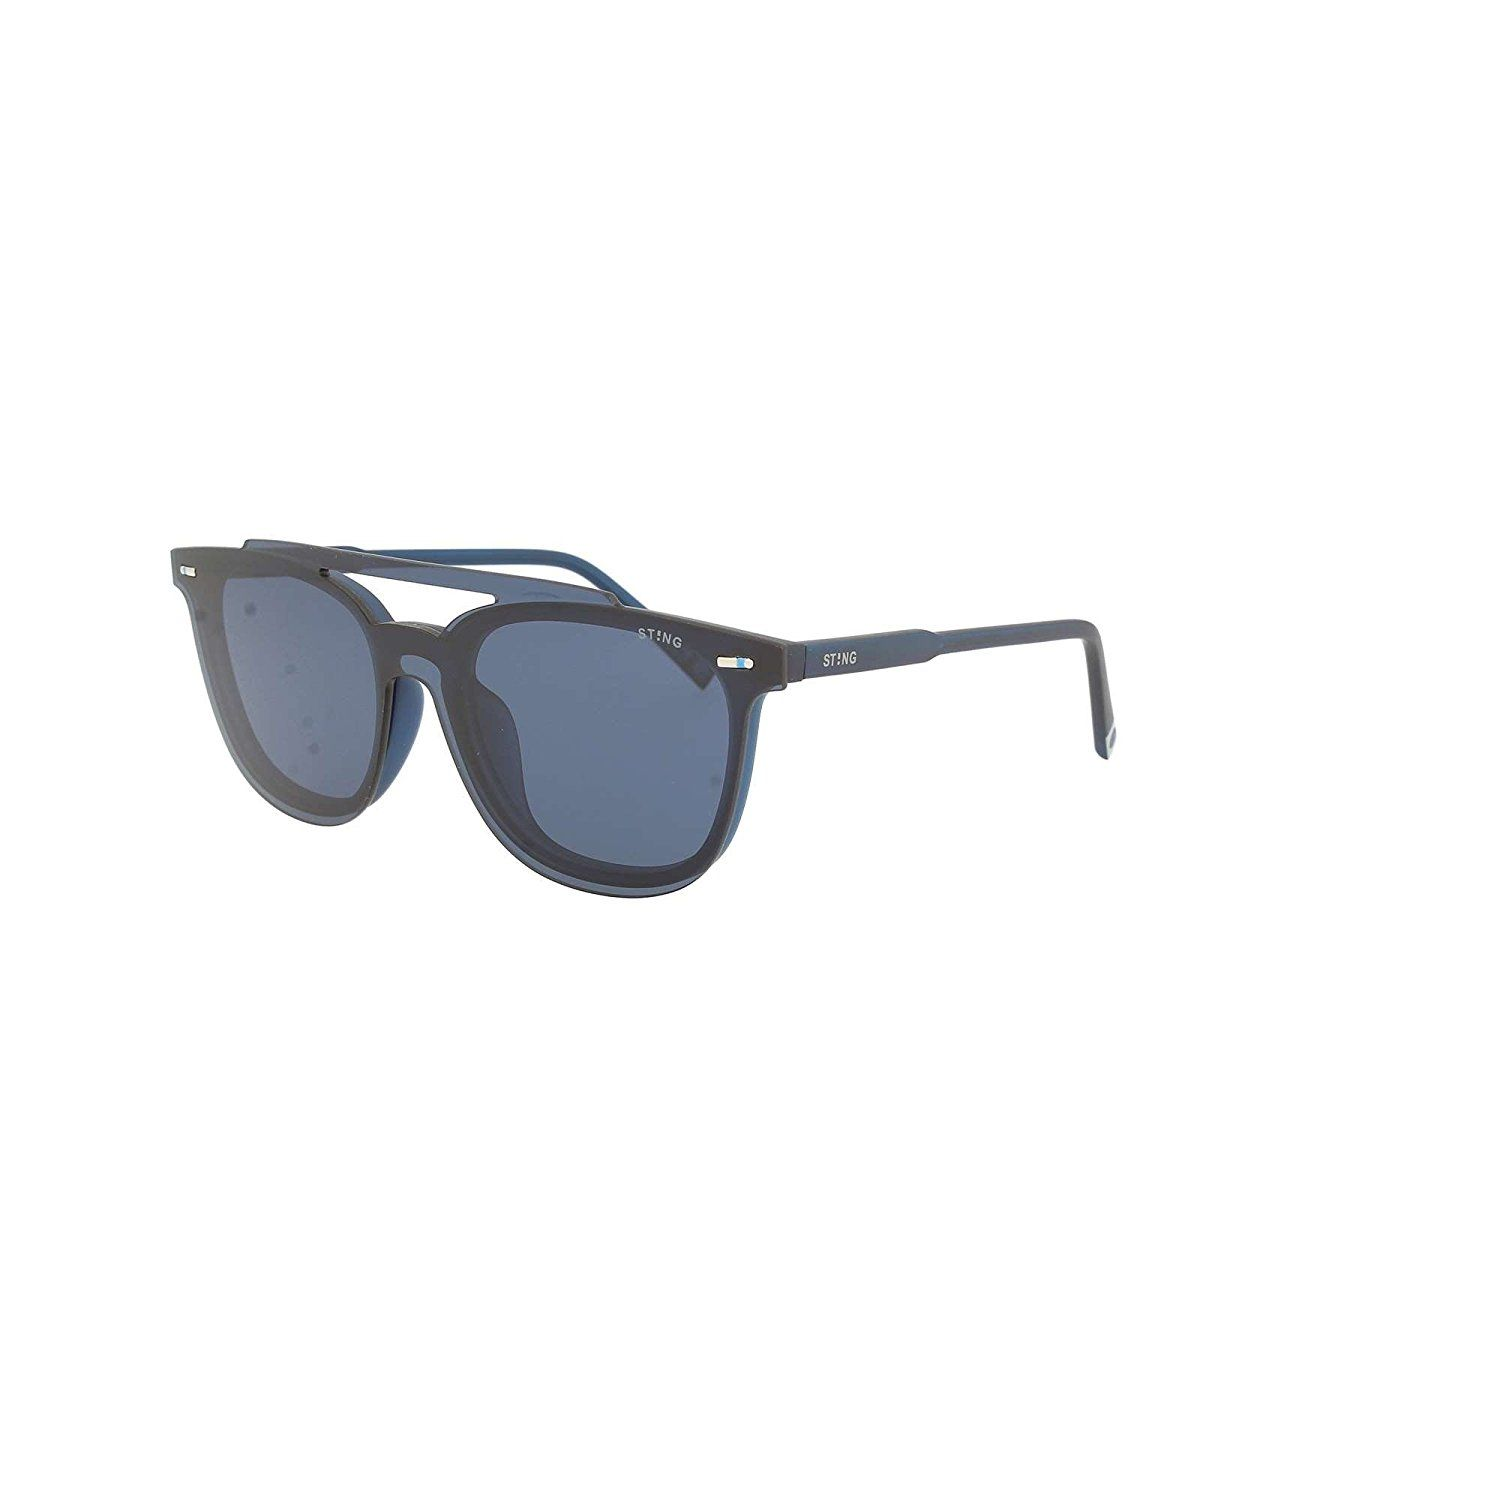 Sting Sting Sunglasses Price in Egypt | Jumia | Sunglasses